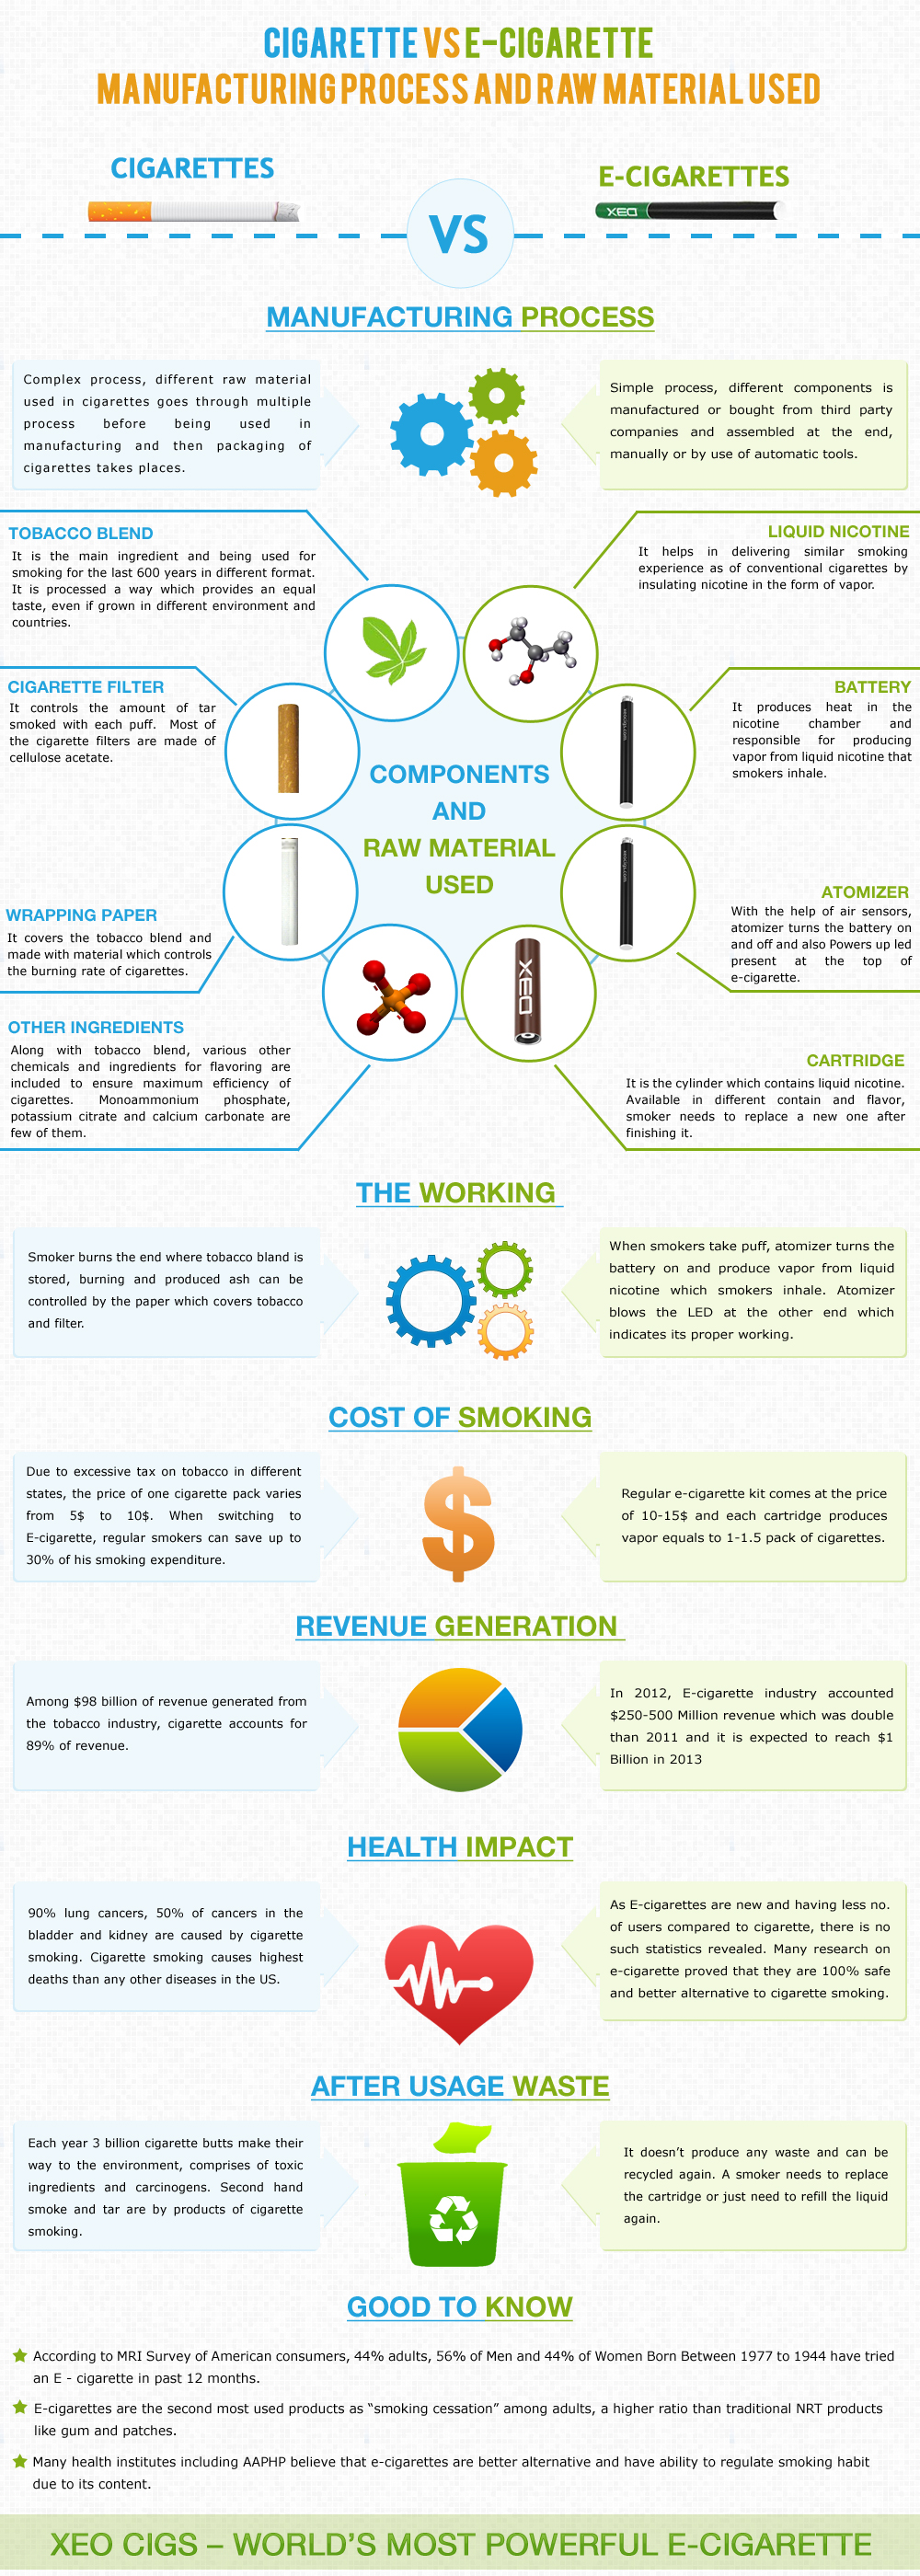 Differences between Manufacture and Raw Materials used in Cigarette and E-cigarette